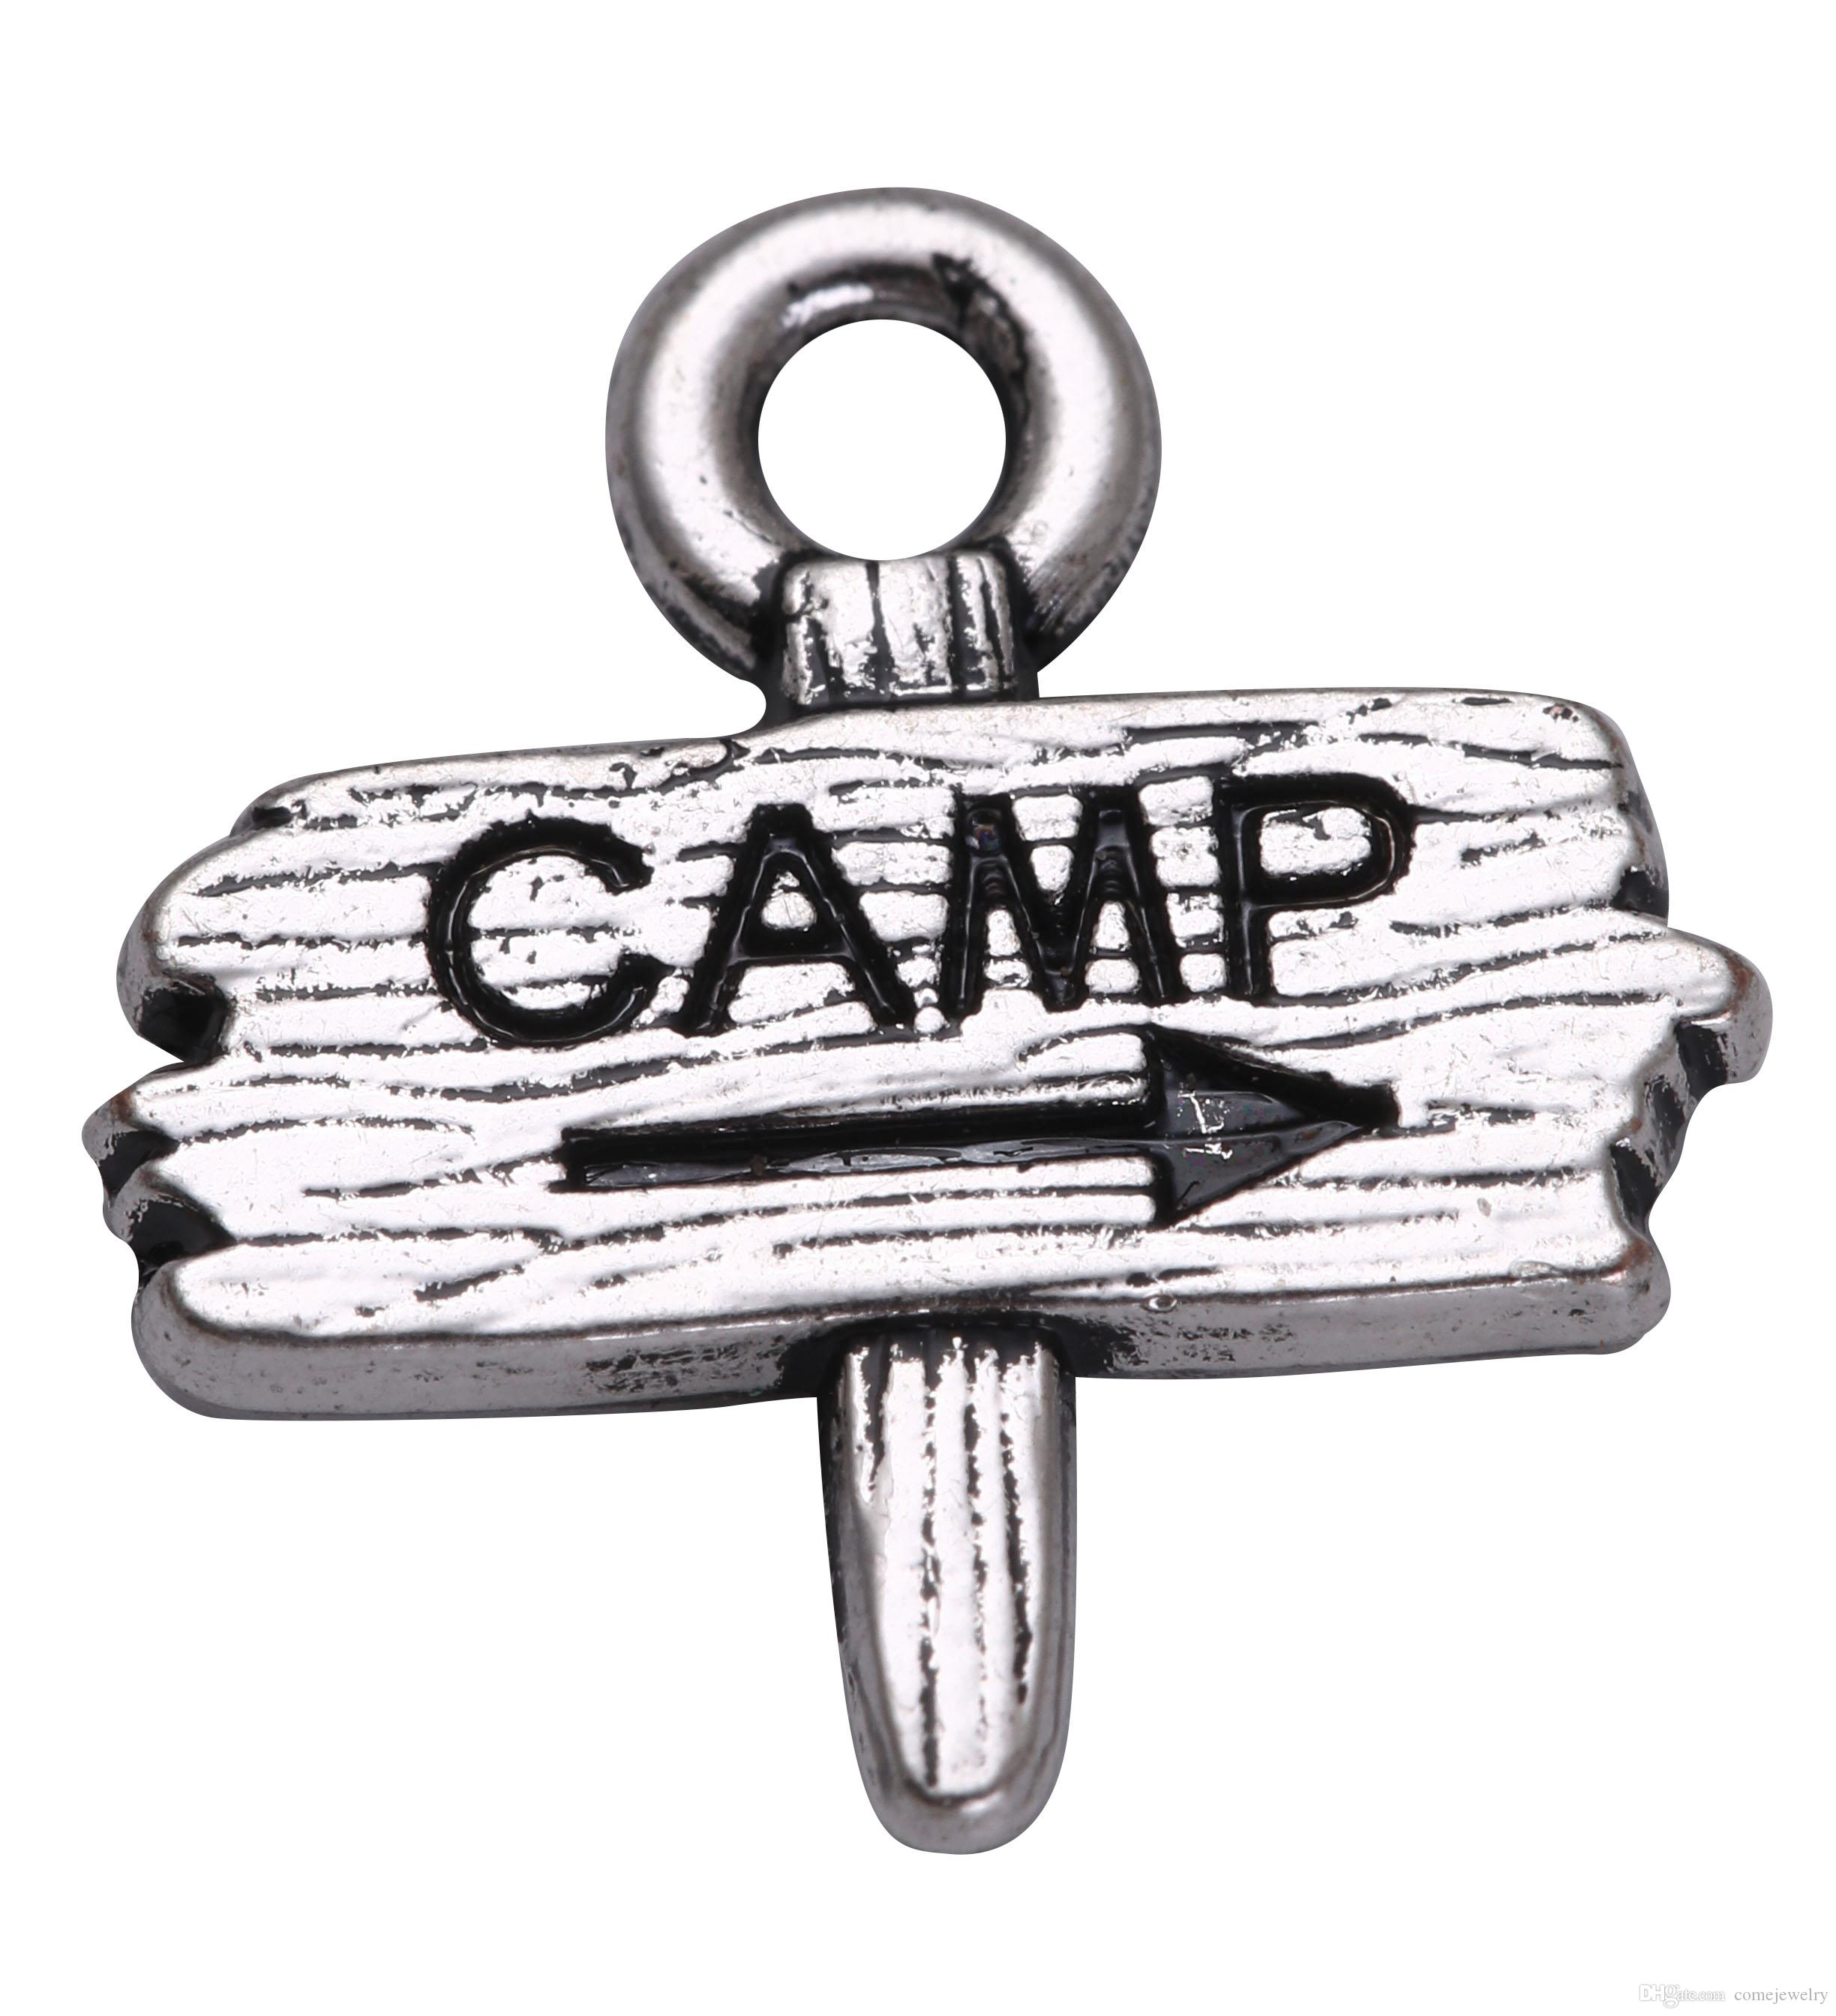 95ccf2c0f 2019 Lemegeton Zinc Alloy Metal DIY Custom Jewelry Accessories Antique  Silver Camp Camping Road Sign Pendant Charms For Bracelets From  Comejewelry, ...